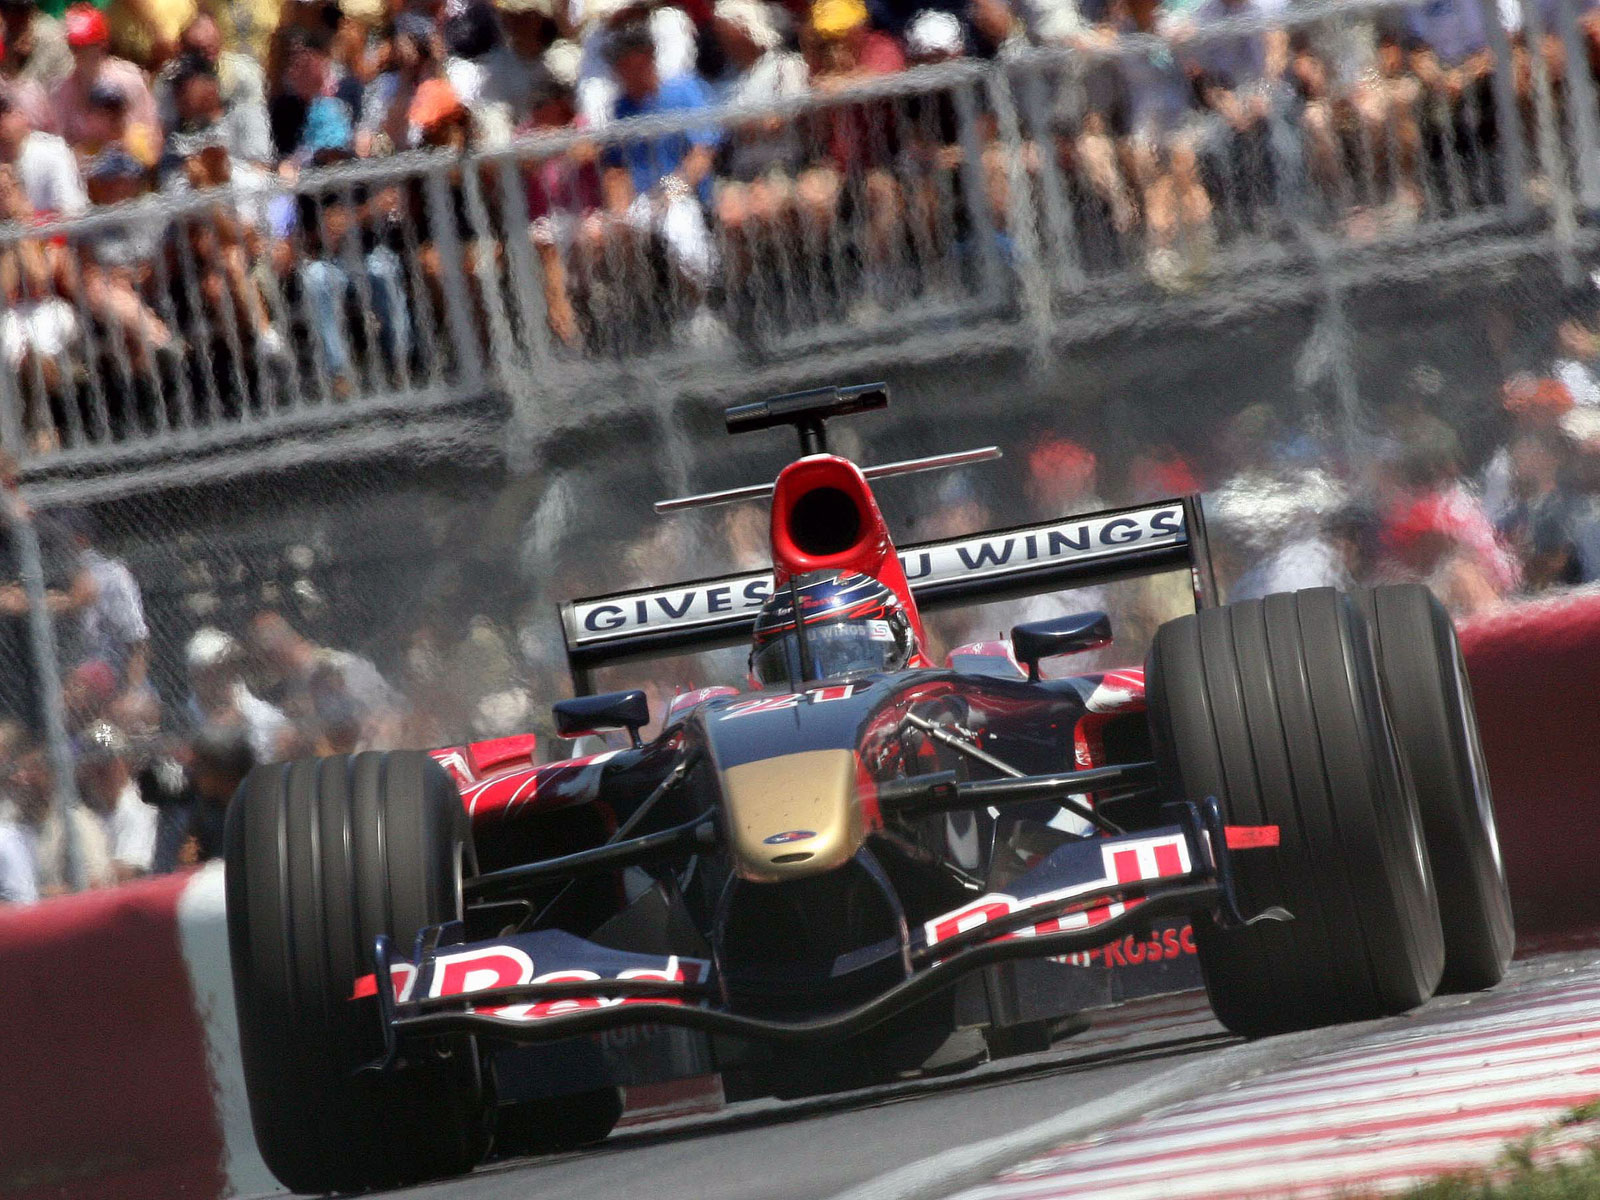 F1-Fansite.com HD Wallpaper 2006 F1 GP Canada_07.jpg